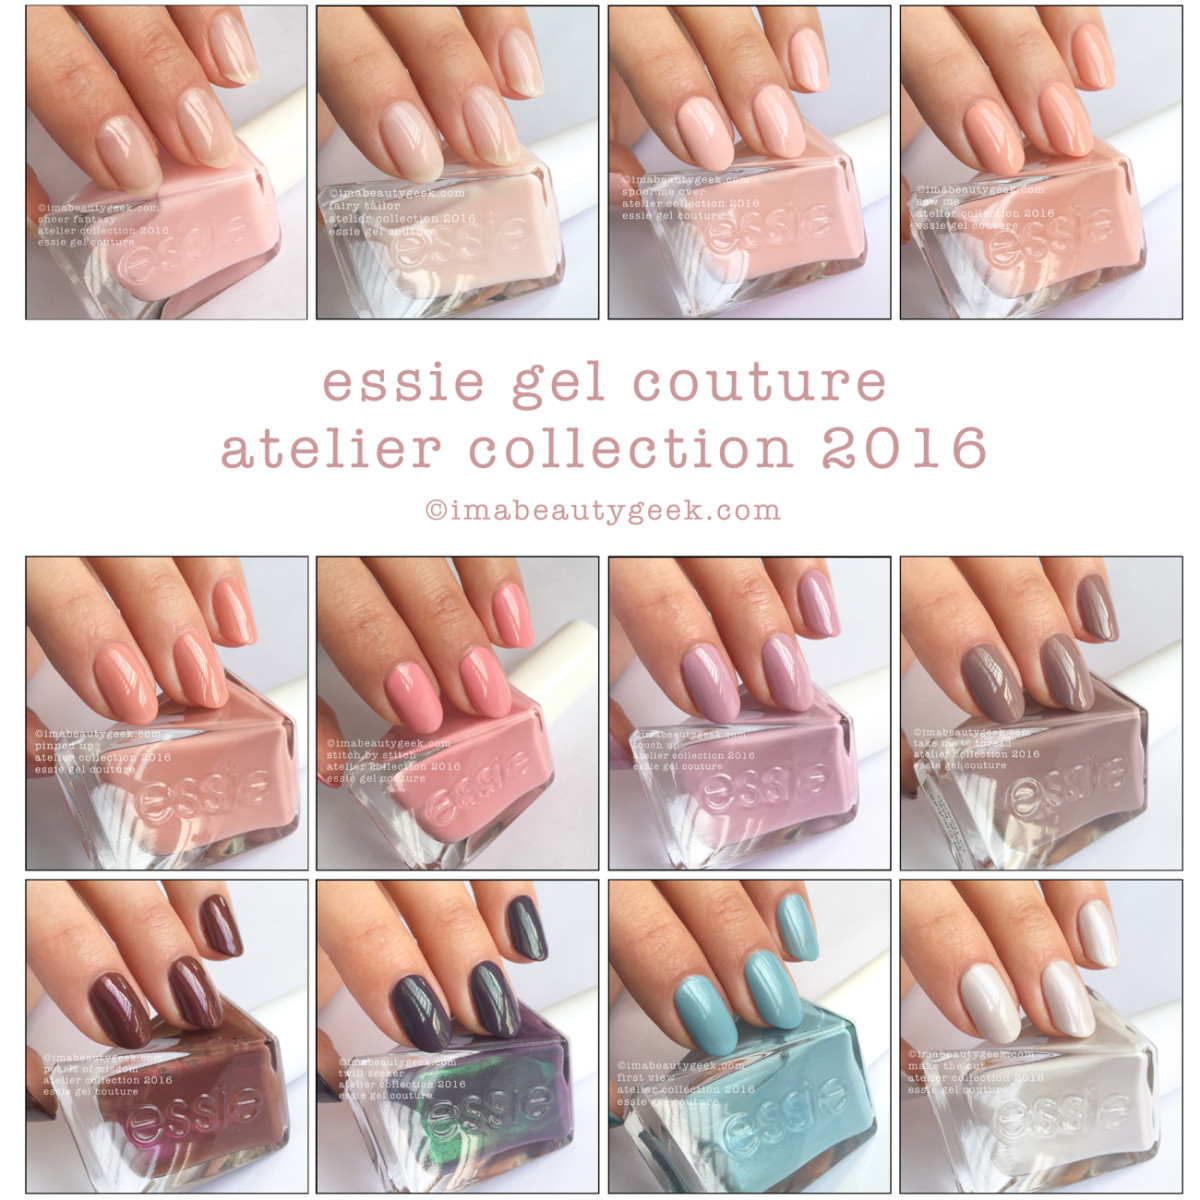 Essie Gel Couture: Atelier Collection